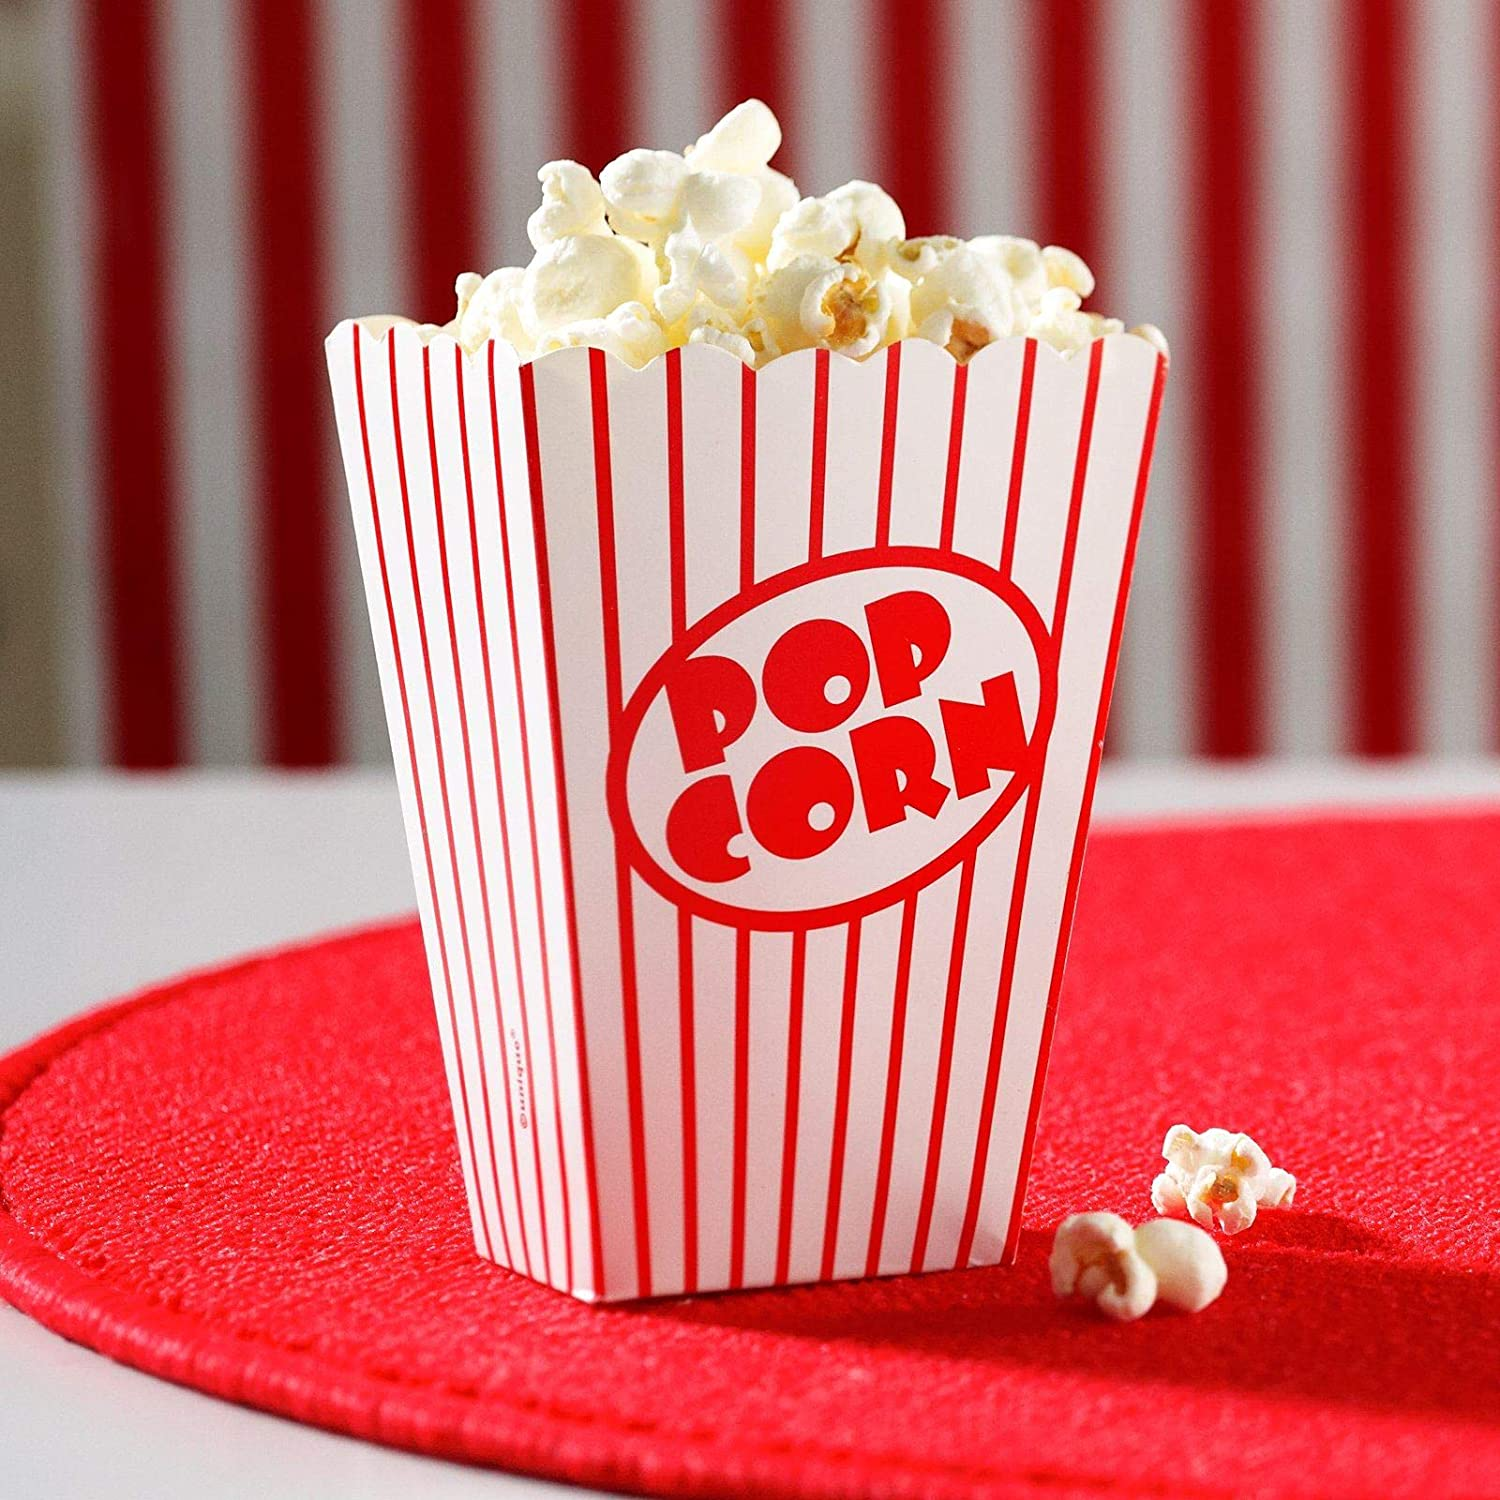 SHATCHI Pack Of 10 Paper Popcorn Cardboard Candy Container for Birthday Theatre Themed Cinema Movie Nights Carnivals Party Food Boxes, Red & White Striped